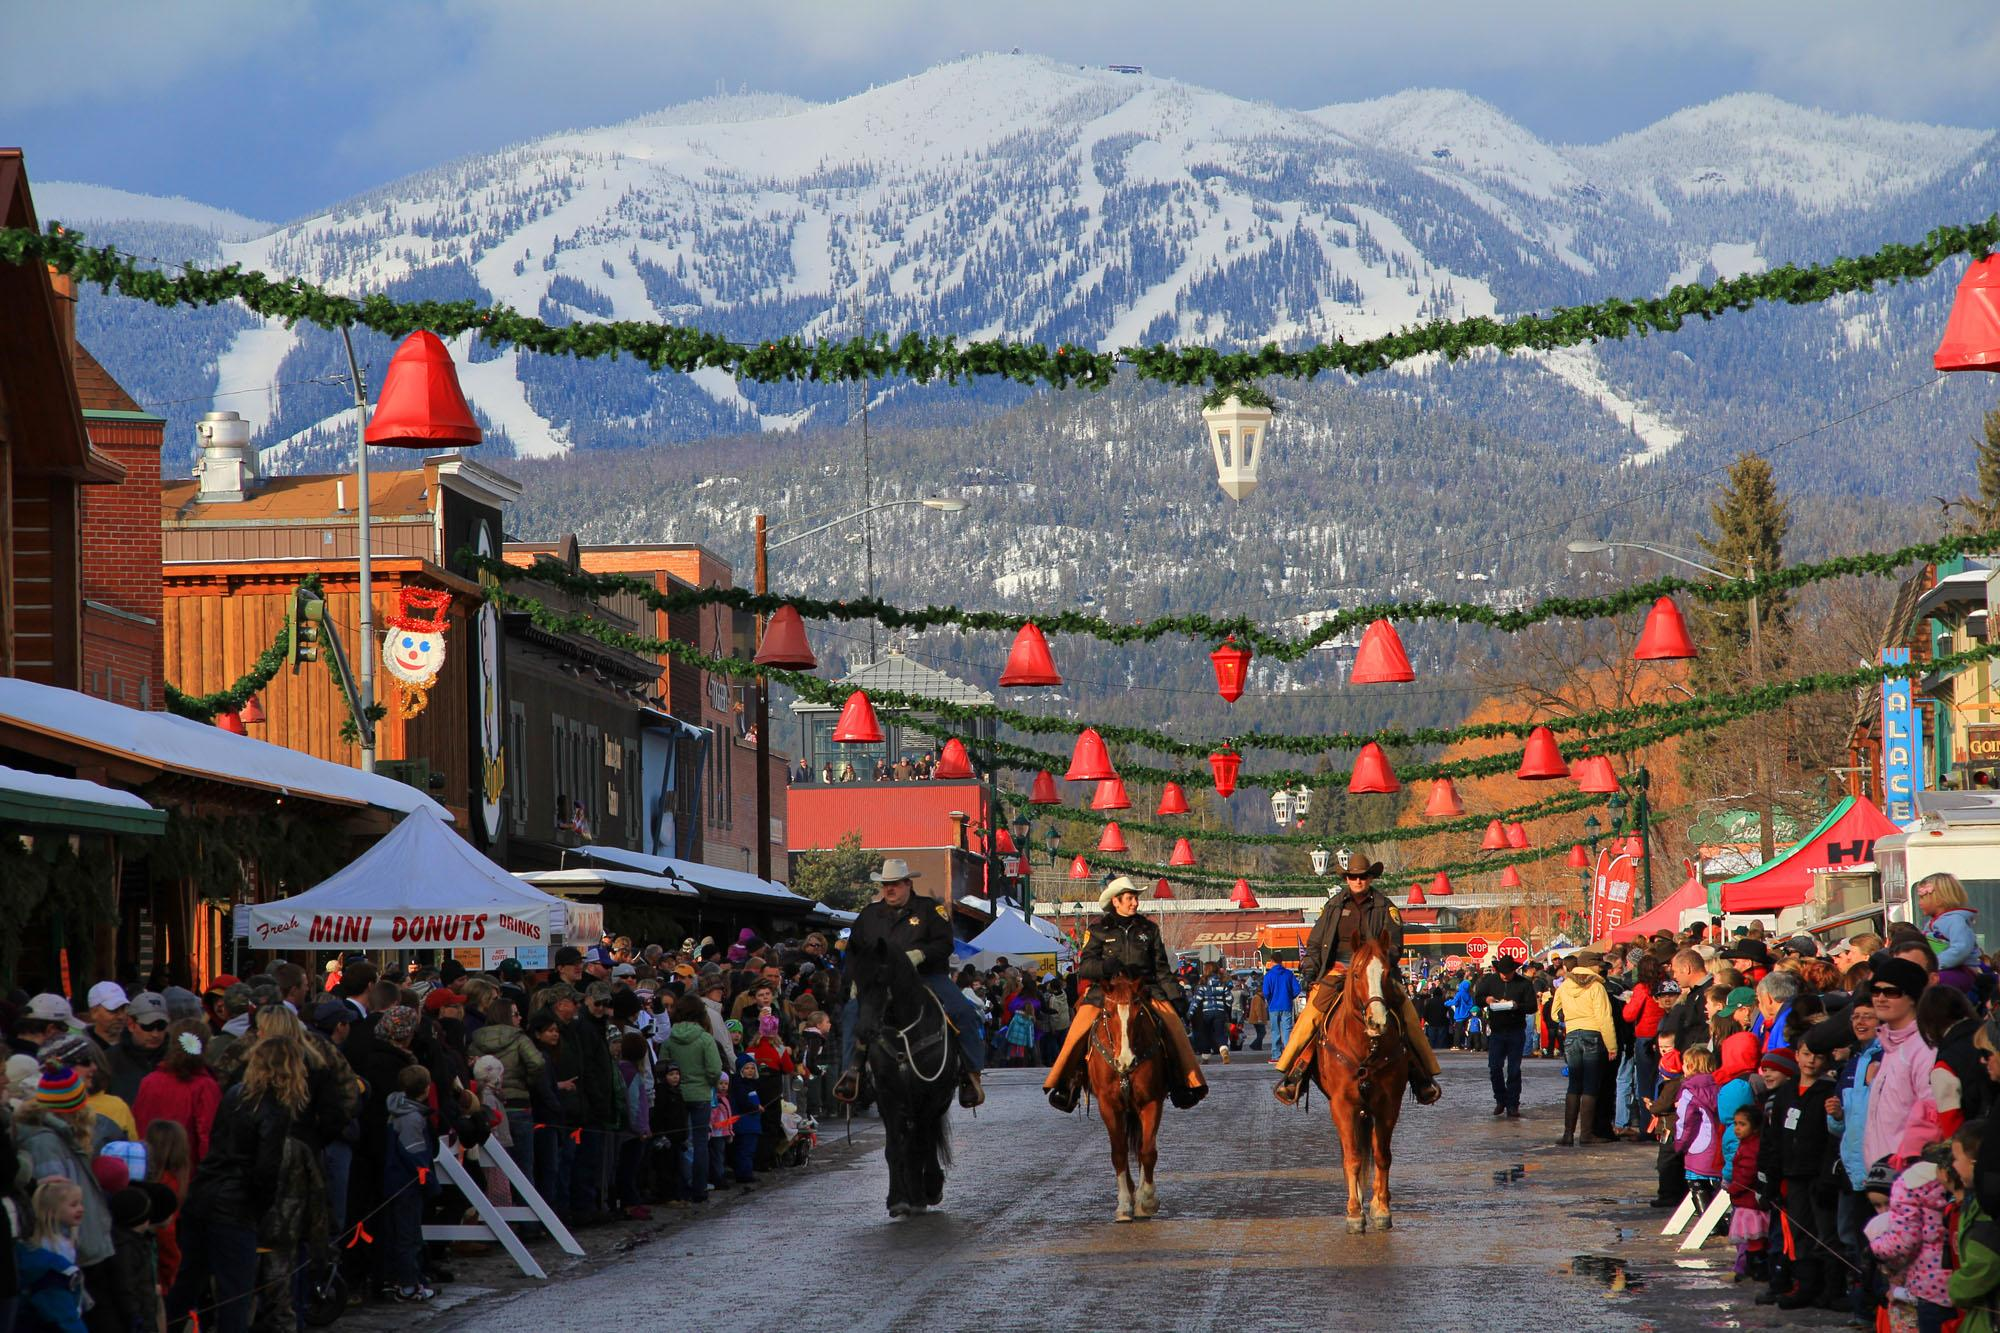 Christmas Carnival Kalispell Mt 2020 Whitefish Winter Carnival | Whitefish Montana Lodging, Dining, and